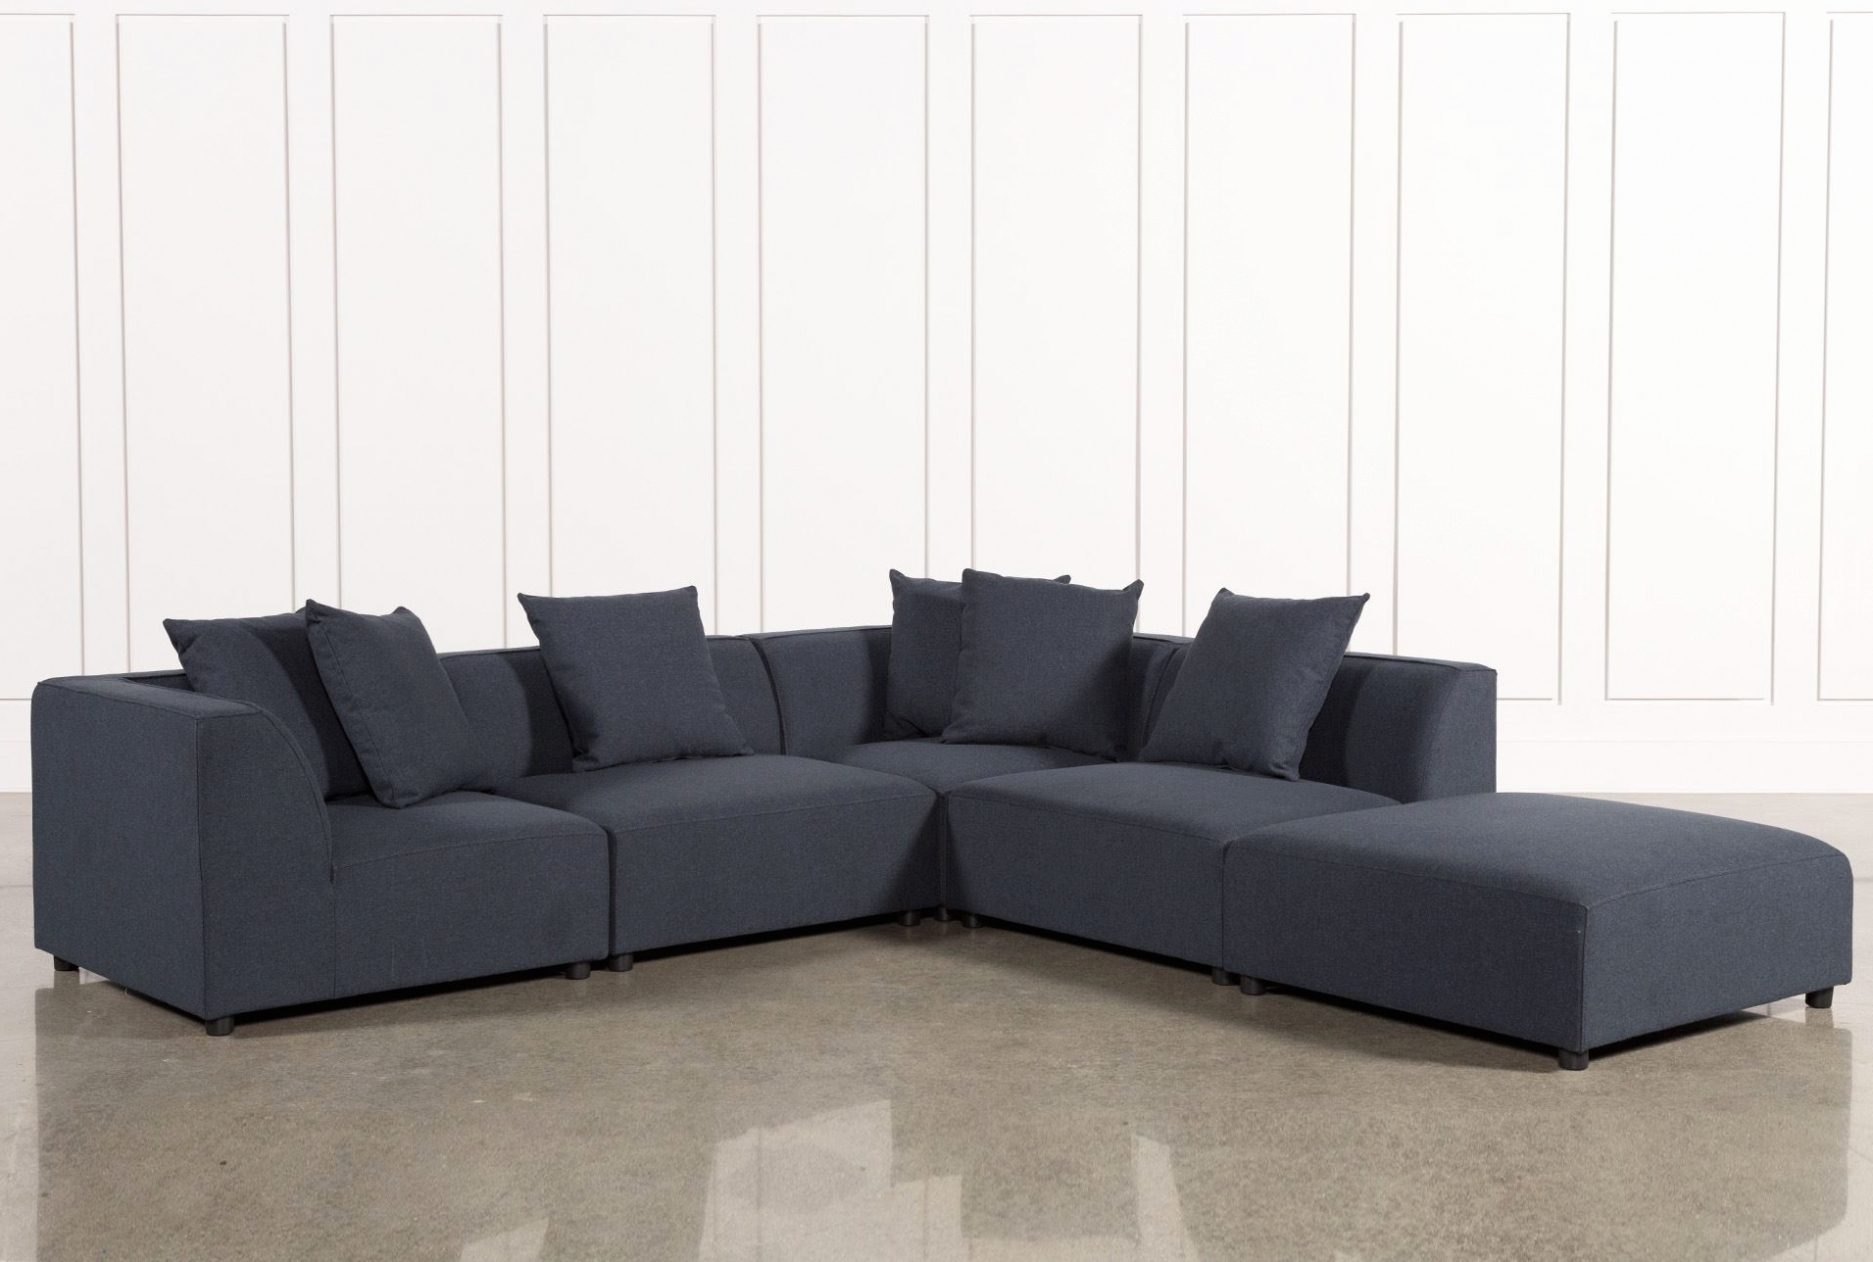 Living Spaces Sectional Sofas For Recent Furniture: Lovely 5 Piece Sectional Sofa With Chaise  (View 13 of 15)